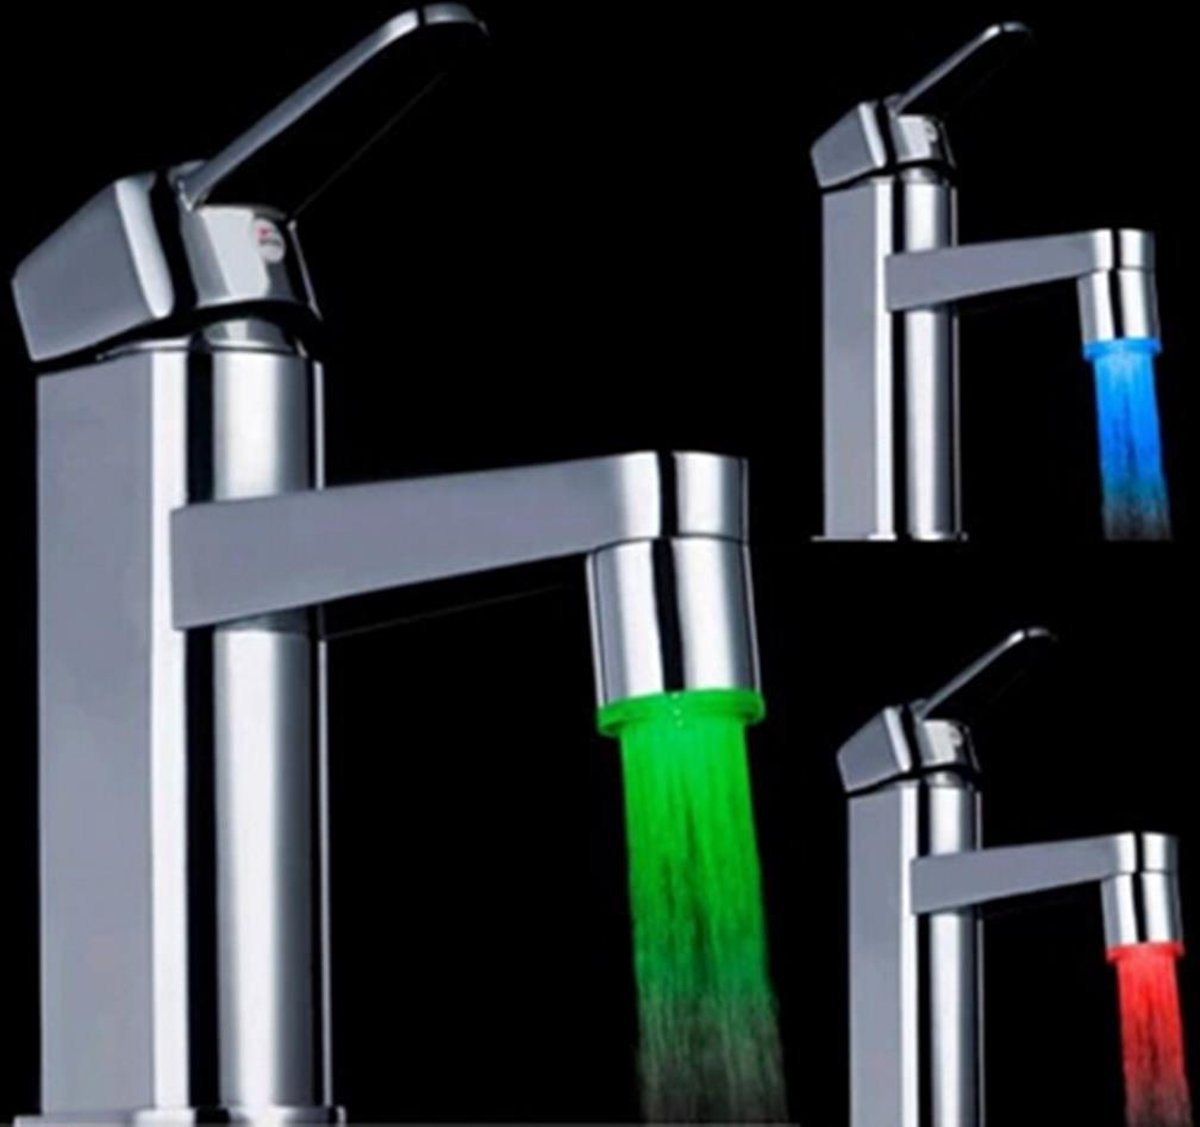 Hot Sale Glow Led Light Water Faucet Tap Lighting Shower Spraying Basin Faucets For Kitchen Bathroom Accessory Bathroom Sinks,faucets & Accessories Bathroom Fixtures